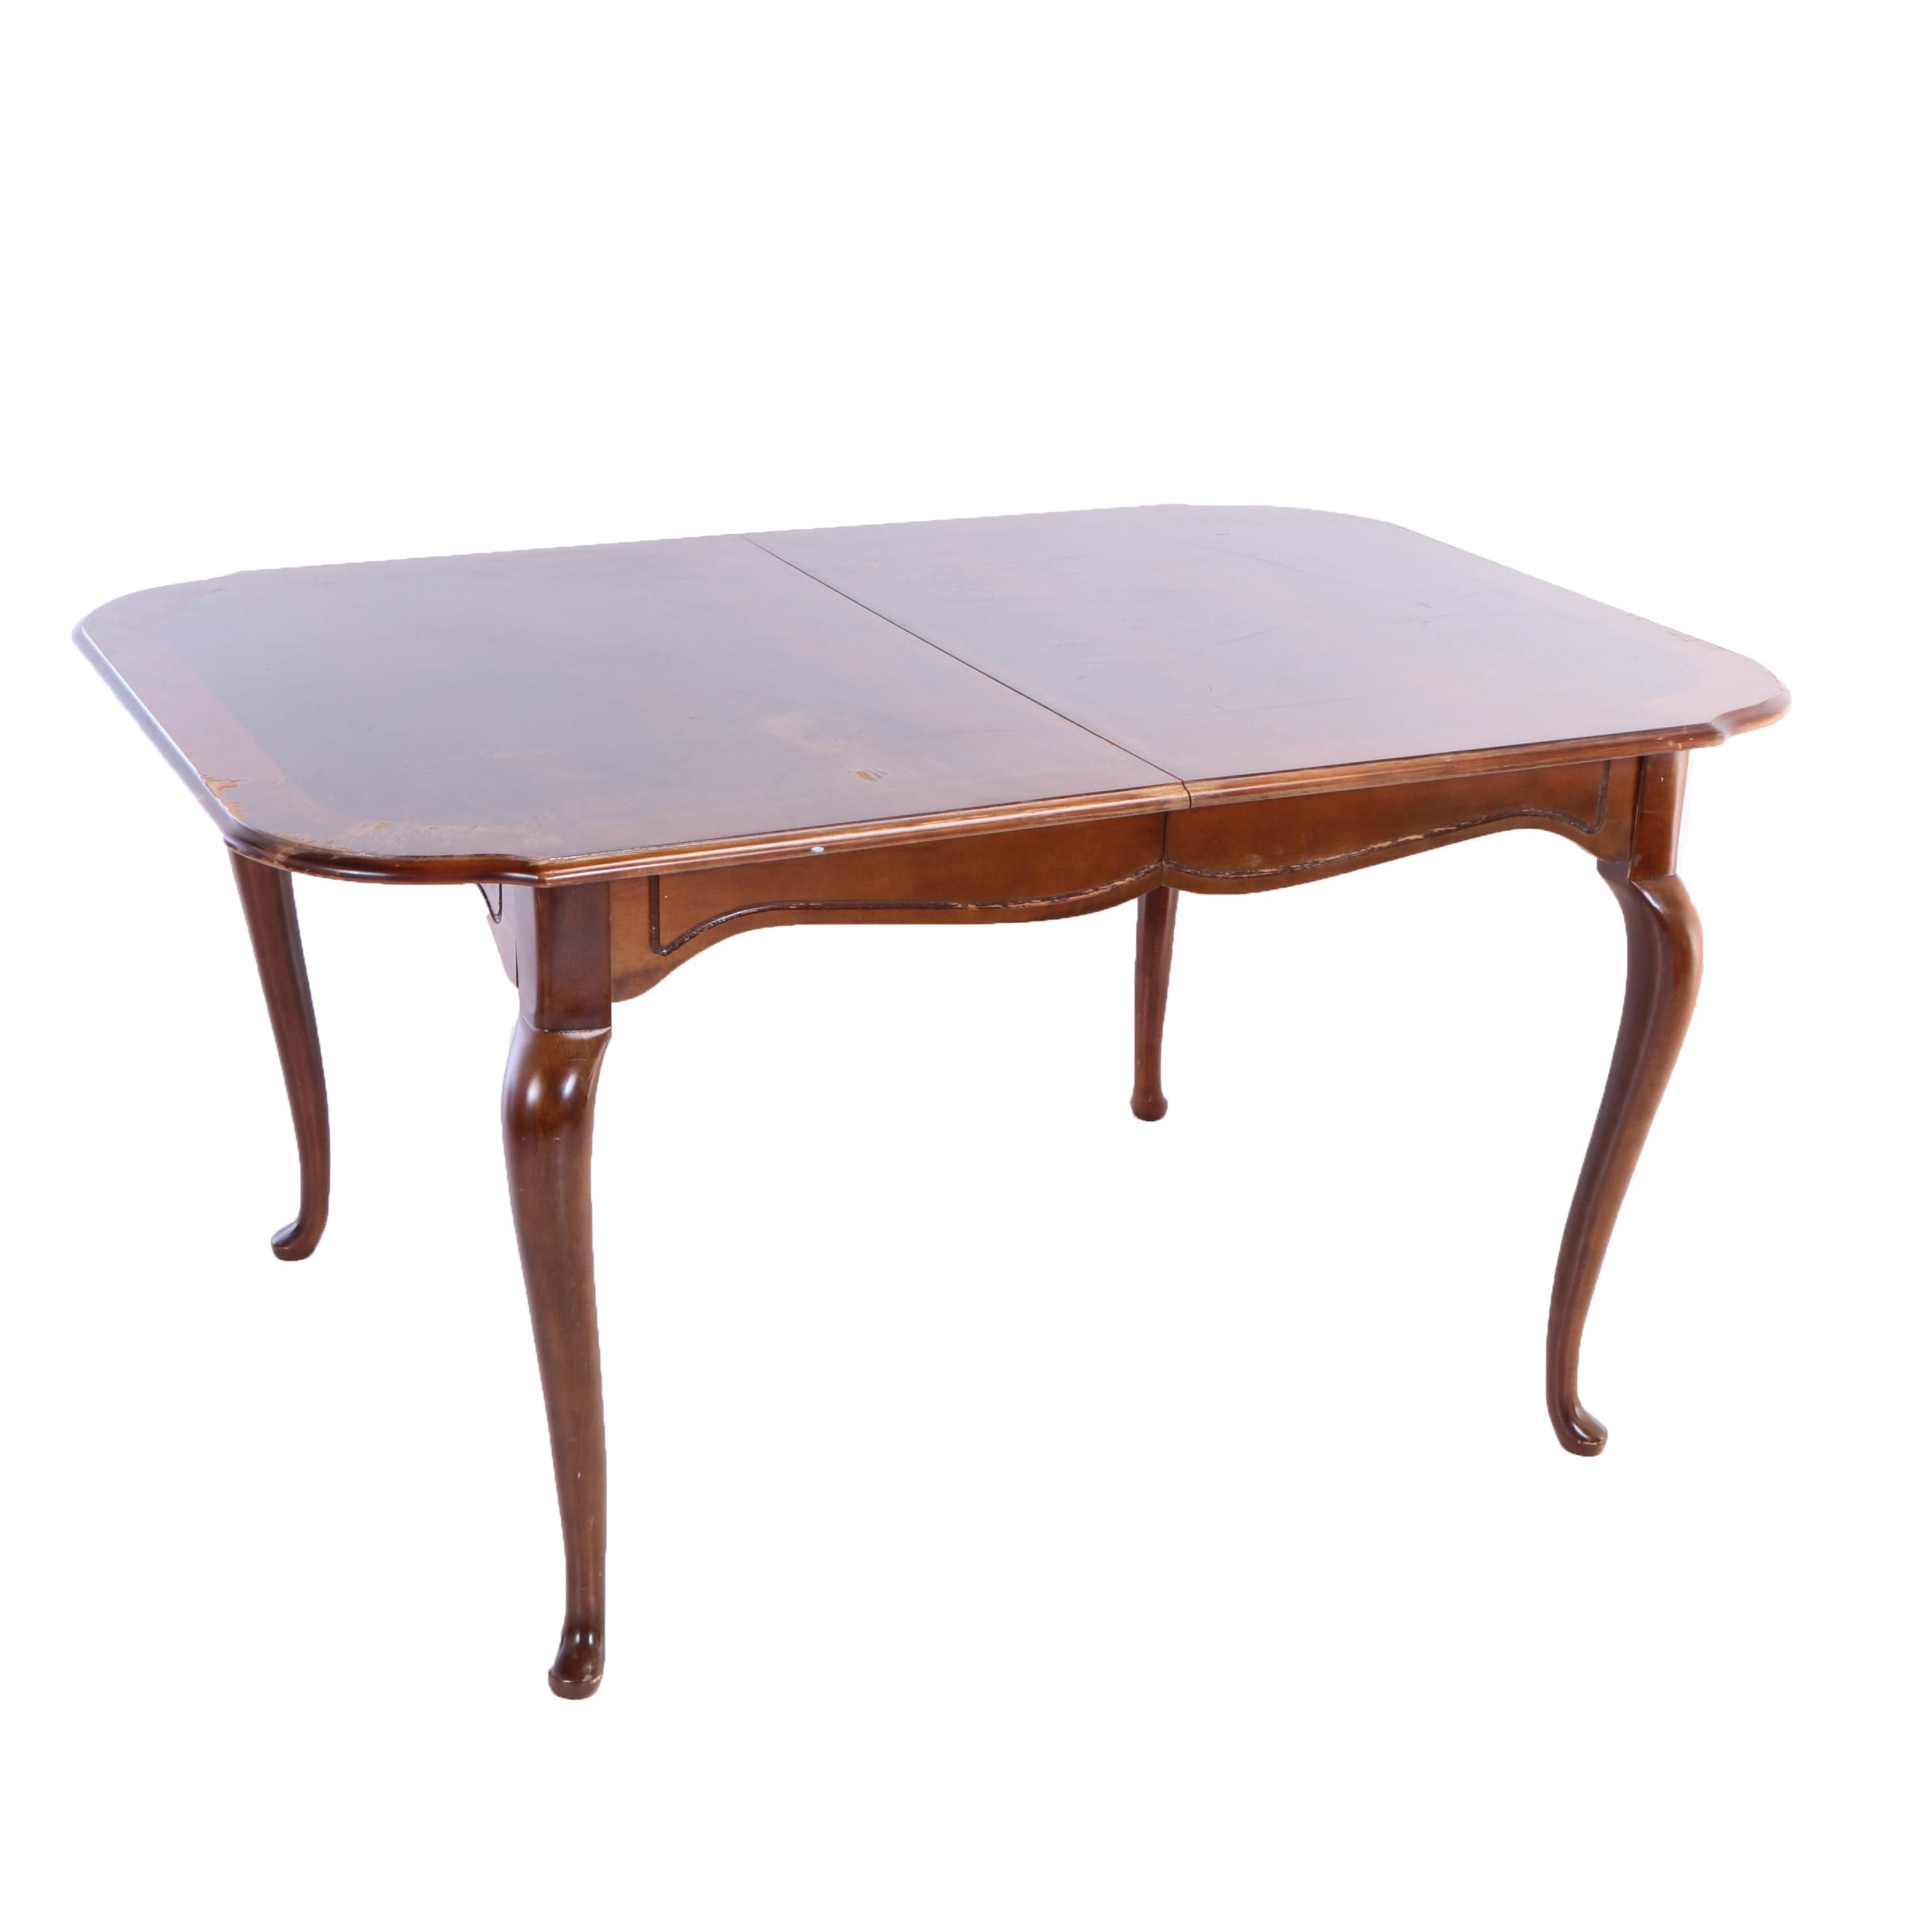 Queen Anne Style Extending Dining Table, 20th Century